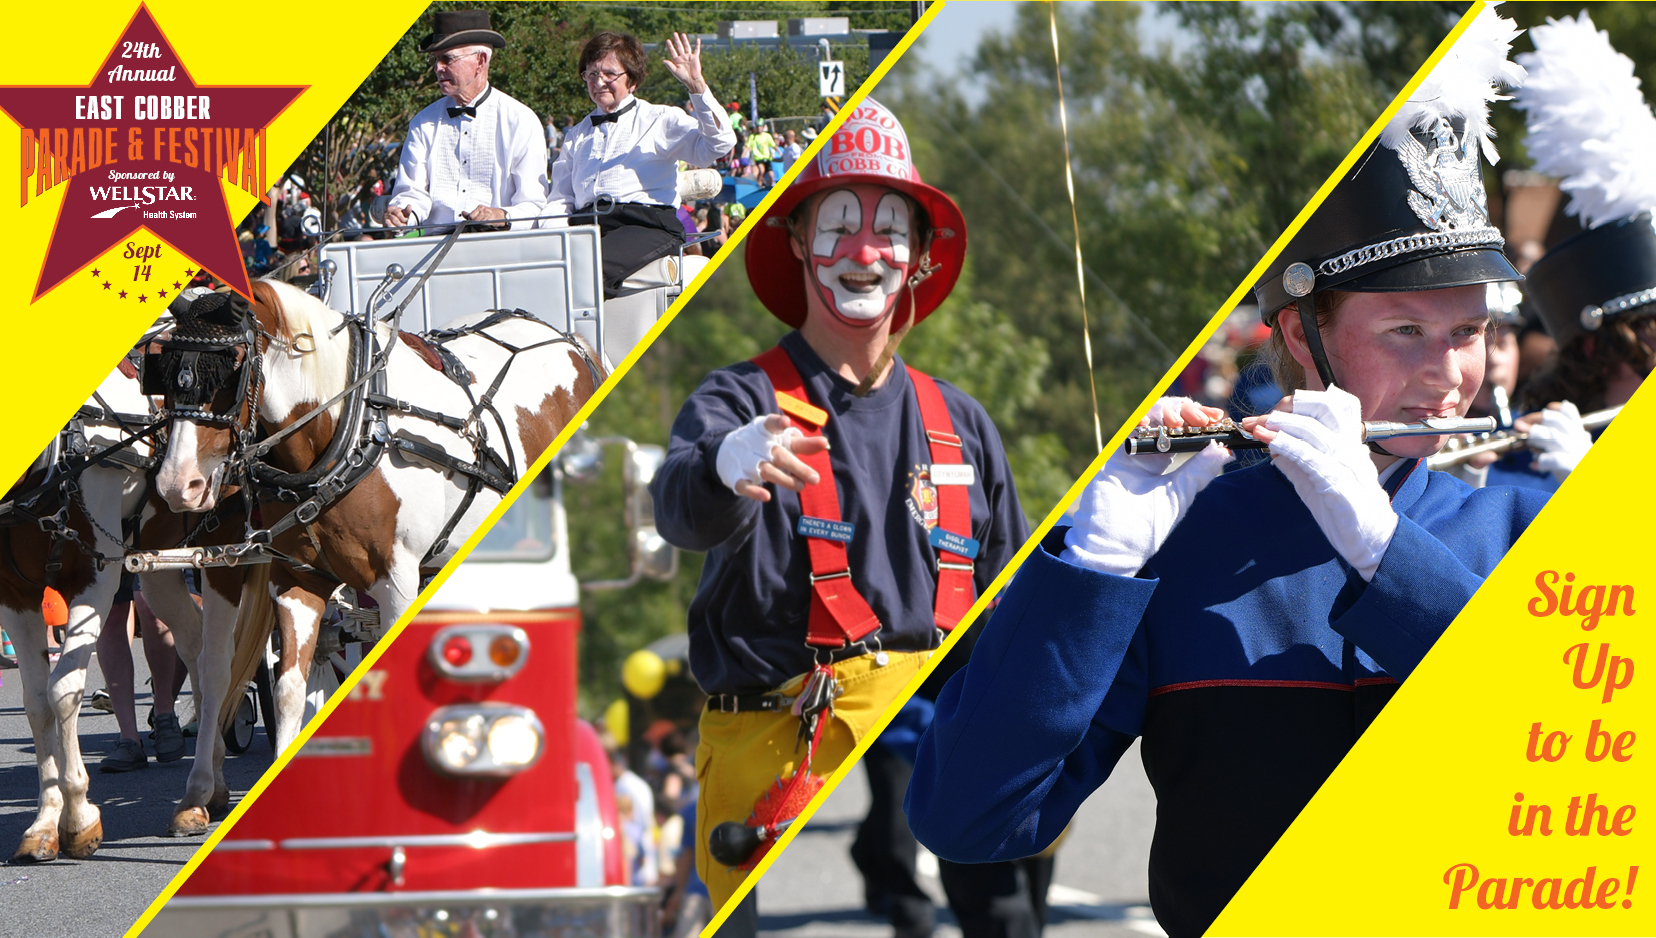 BE A PART OF IT! SIGN UP TO PARTICIPATE IN THIS YEAR'S PARADE 1